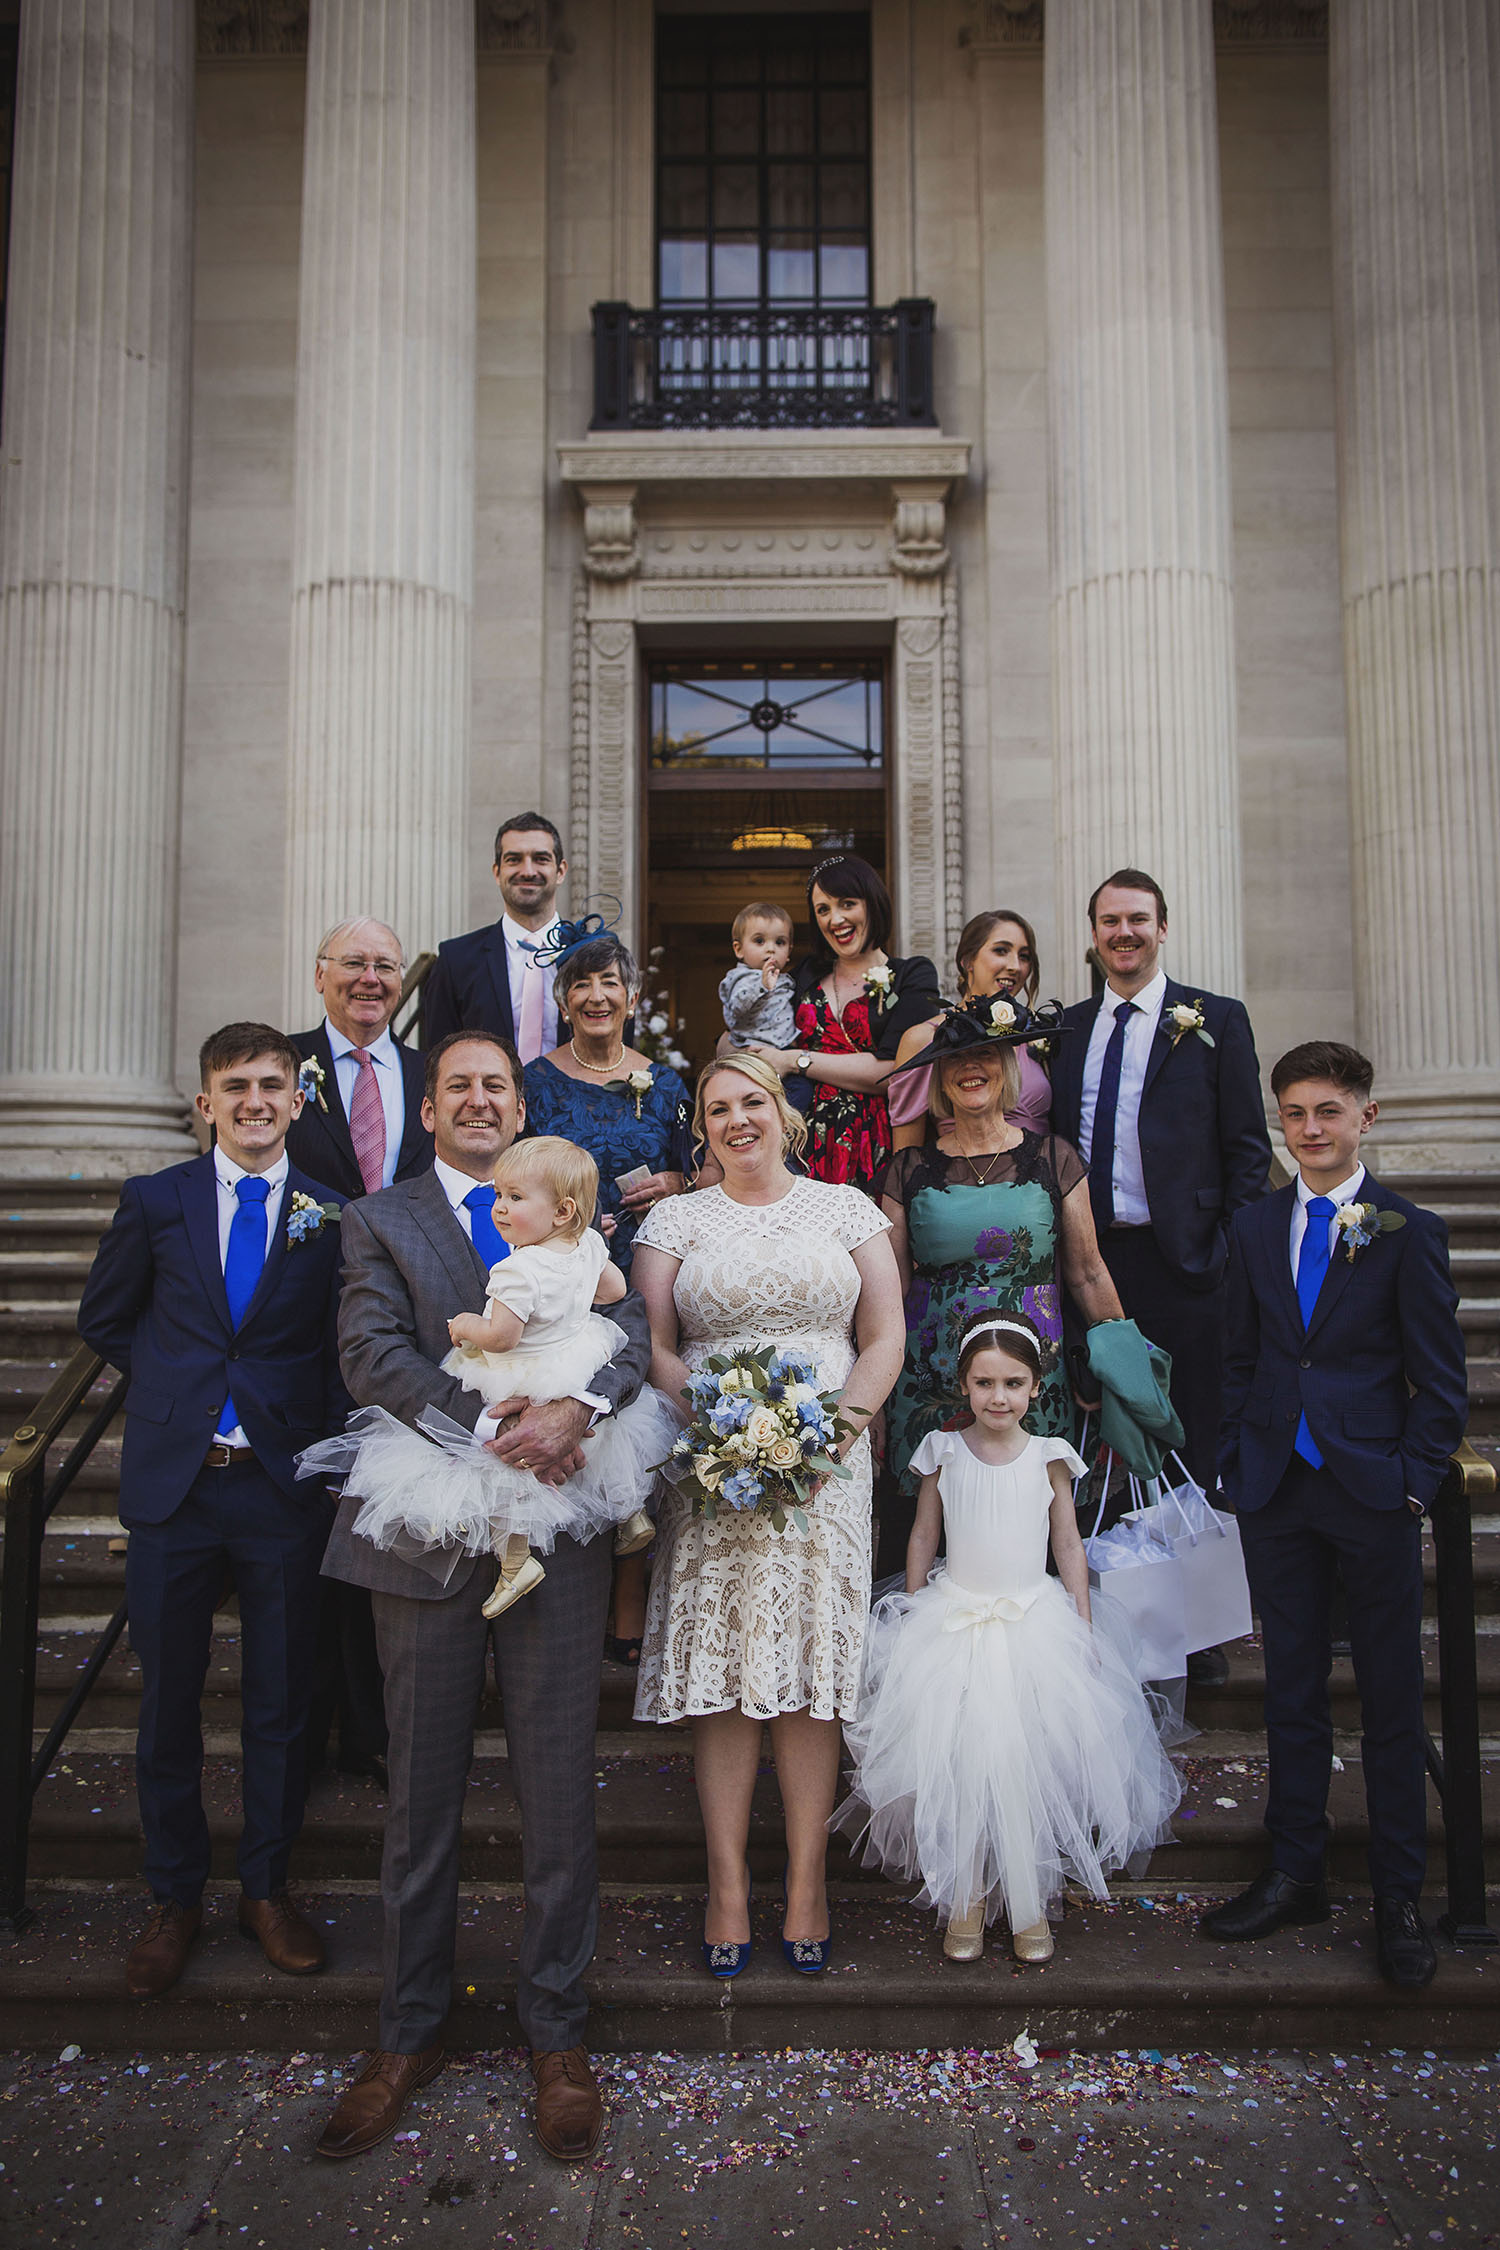 group wedding family photo on steps of the old marylebone town hall wedding photographer